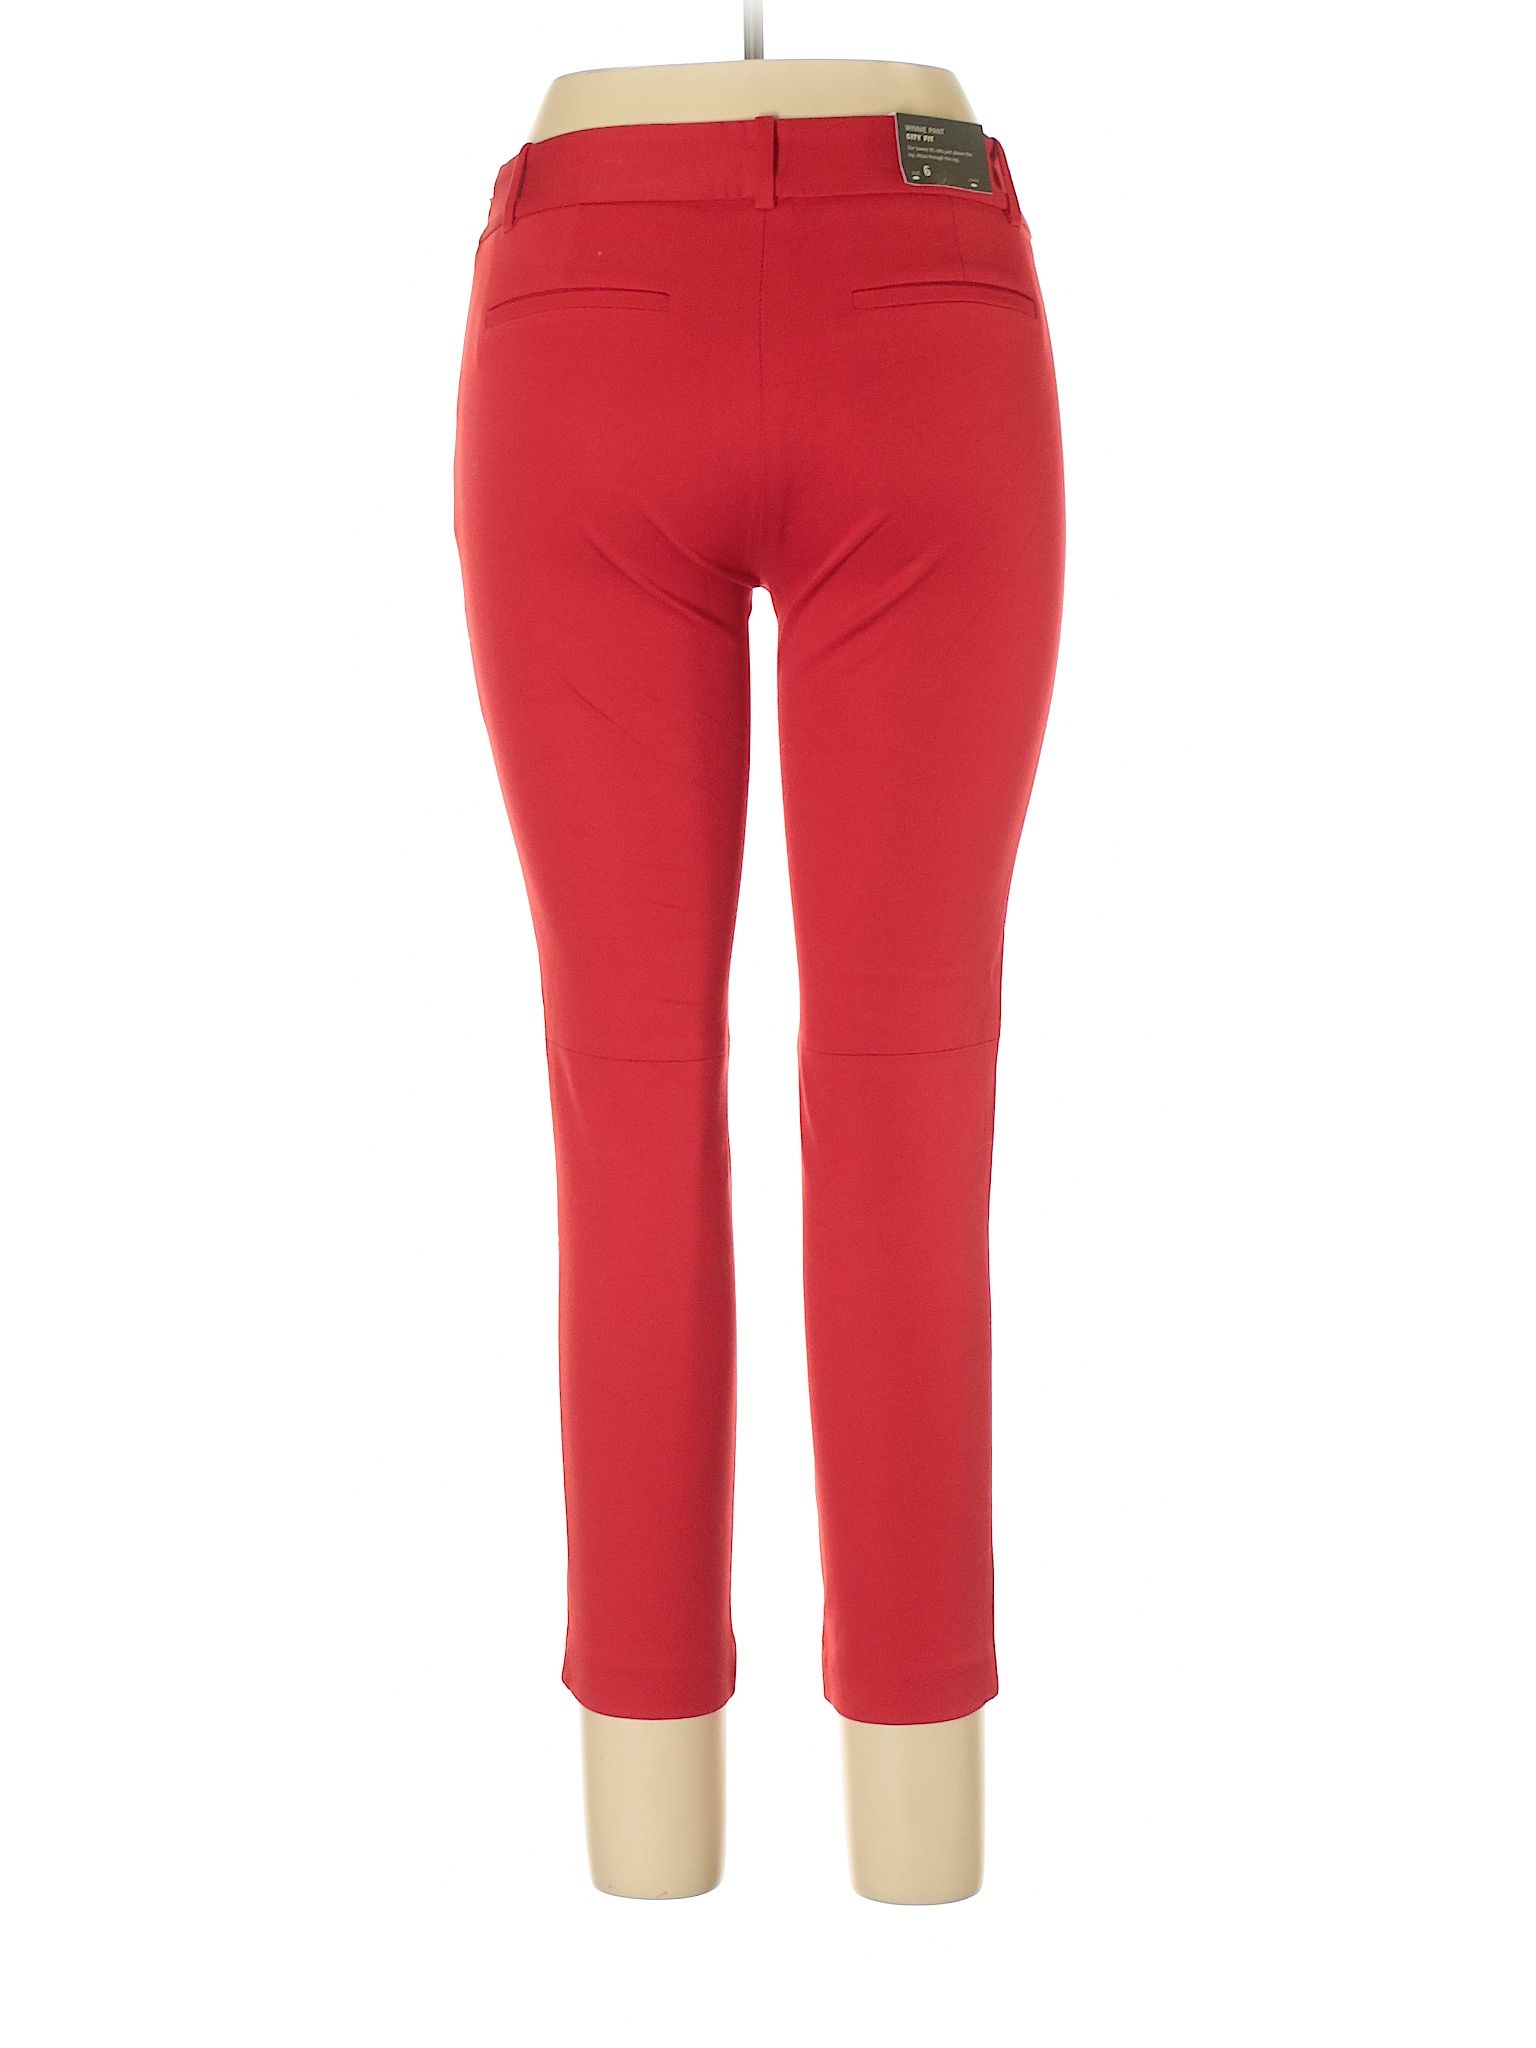 cc912c2d8ab23 J. Crew Factory Store Khakis: Red Women's Bottoms - New With Tags - 31642103